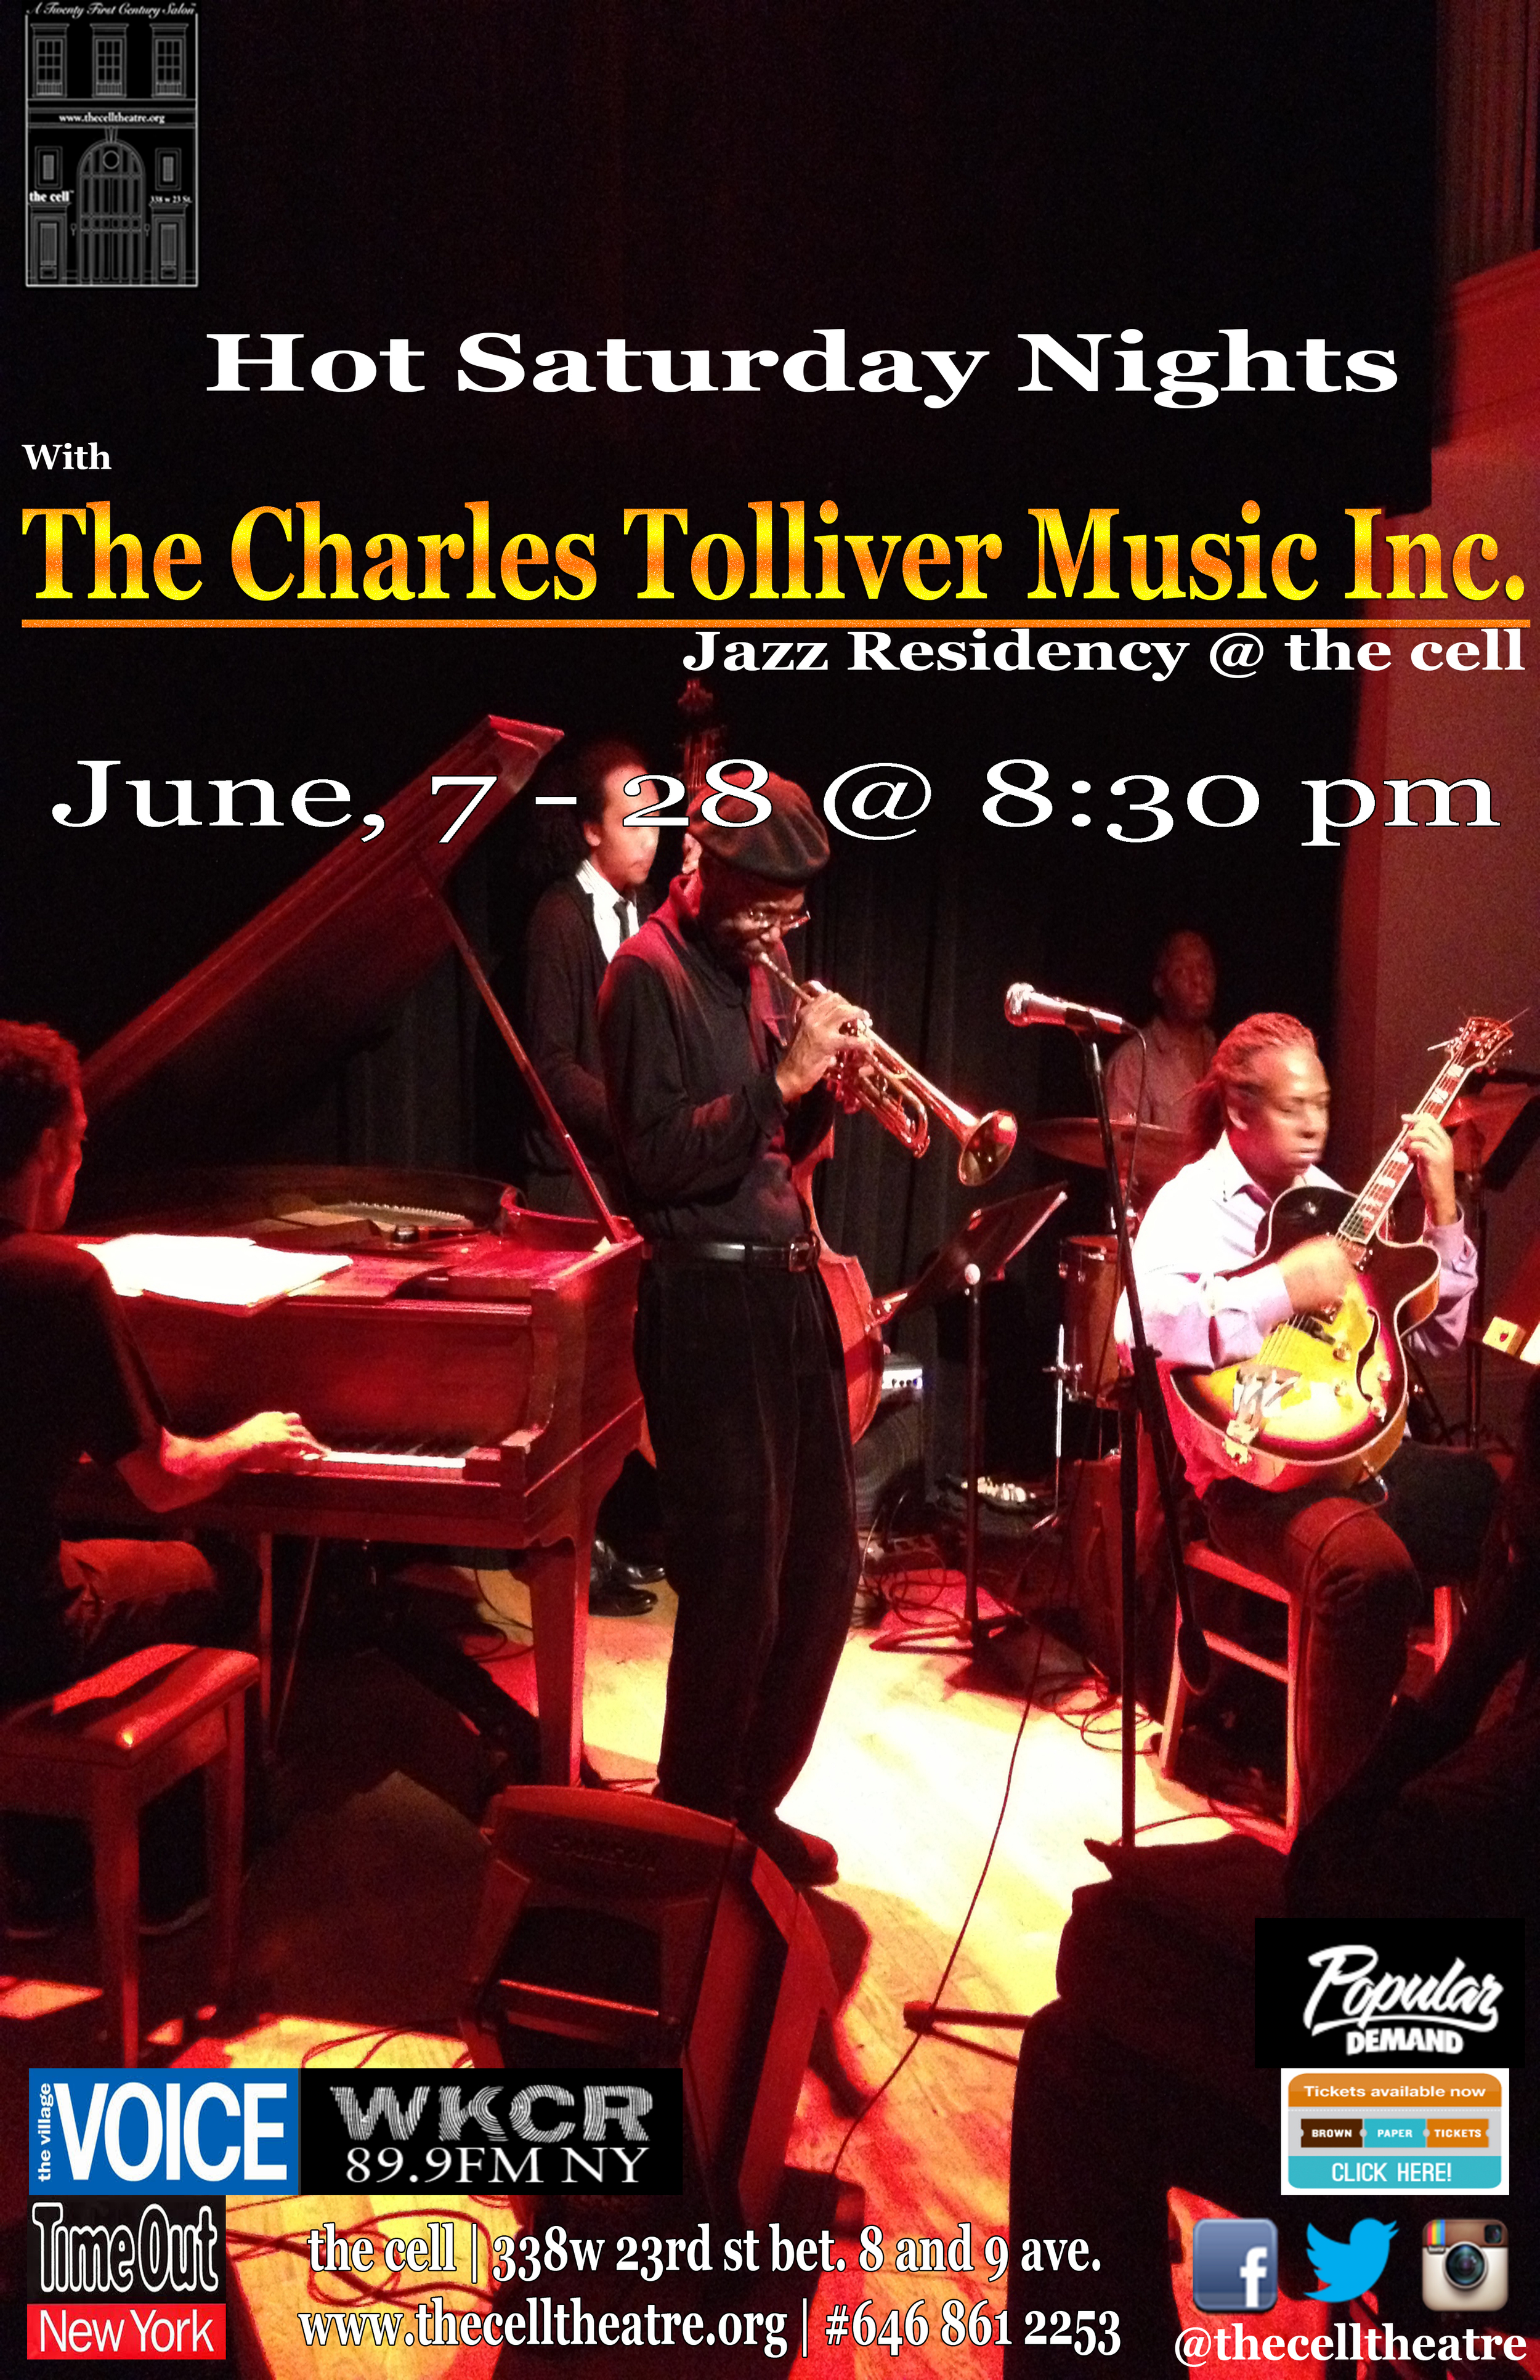 """Charles Tolliver began his professional career and simultaneously his recording debut with the saxophone giant Jackie McLean on Blue Note Records in 1964. Since then he has become one of the preeminent trumpeters in Jazz as well as one of its most gifted composer/arranger bandleaders. He is also a Grammy nominated recipient for his Blue Note Records recording """"With Love"""".  With a career that has spanned five decades he has recorded and/or performed with such renowned artists as Roy Haynes, Hank Mobley, Willie Bobo, Horace Silver, McCoy Tyner, Sonny Rollins, Booker Ervin, Gary Bartz, Gerald Wilson Orchestra, Oliver Nelson, Stanley Cowell, Herbie Hancock, Andrew Hill, Louis Hayes, Roy Ayers, Art Blakey & the Jazz Messengers, and owned the trumpet chair with the great Max Roach for some years.  One of his latest recordings is """"Emperor March"""" recorded live at the Blue Note club New York City.   The Charles Tolliver Quintet just returned from a triumphal European Tour that led the band from Paris to Zagreb for the second part of its Jazz Residency @ the cell.     read more  here !"""